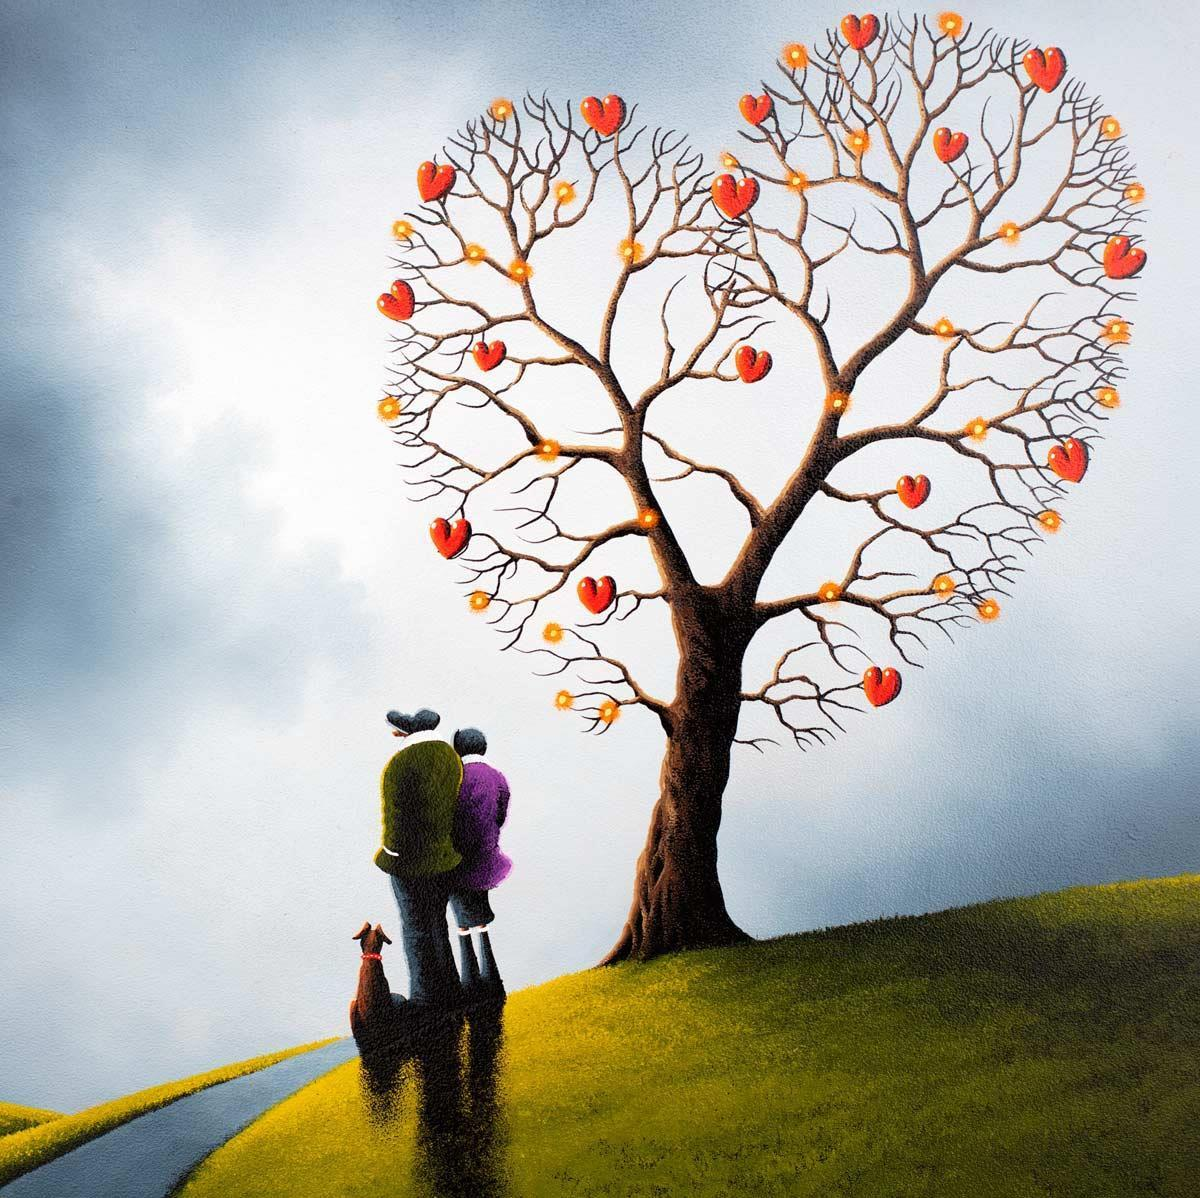 Let Love Grow - Original David Renshaw Framed